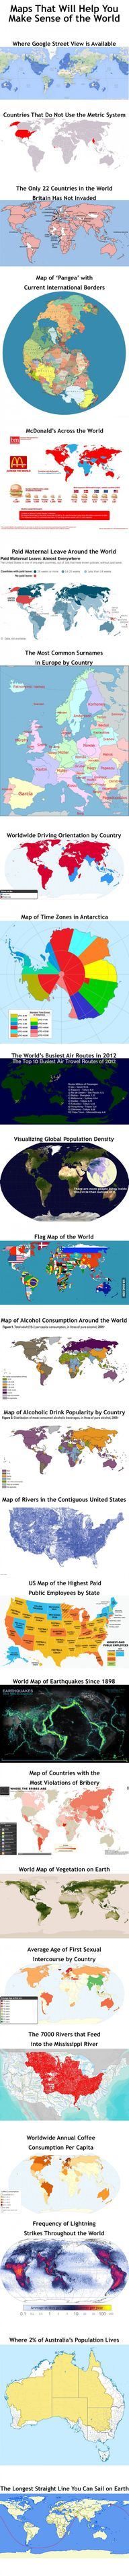 Maps That Will Help